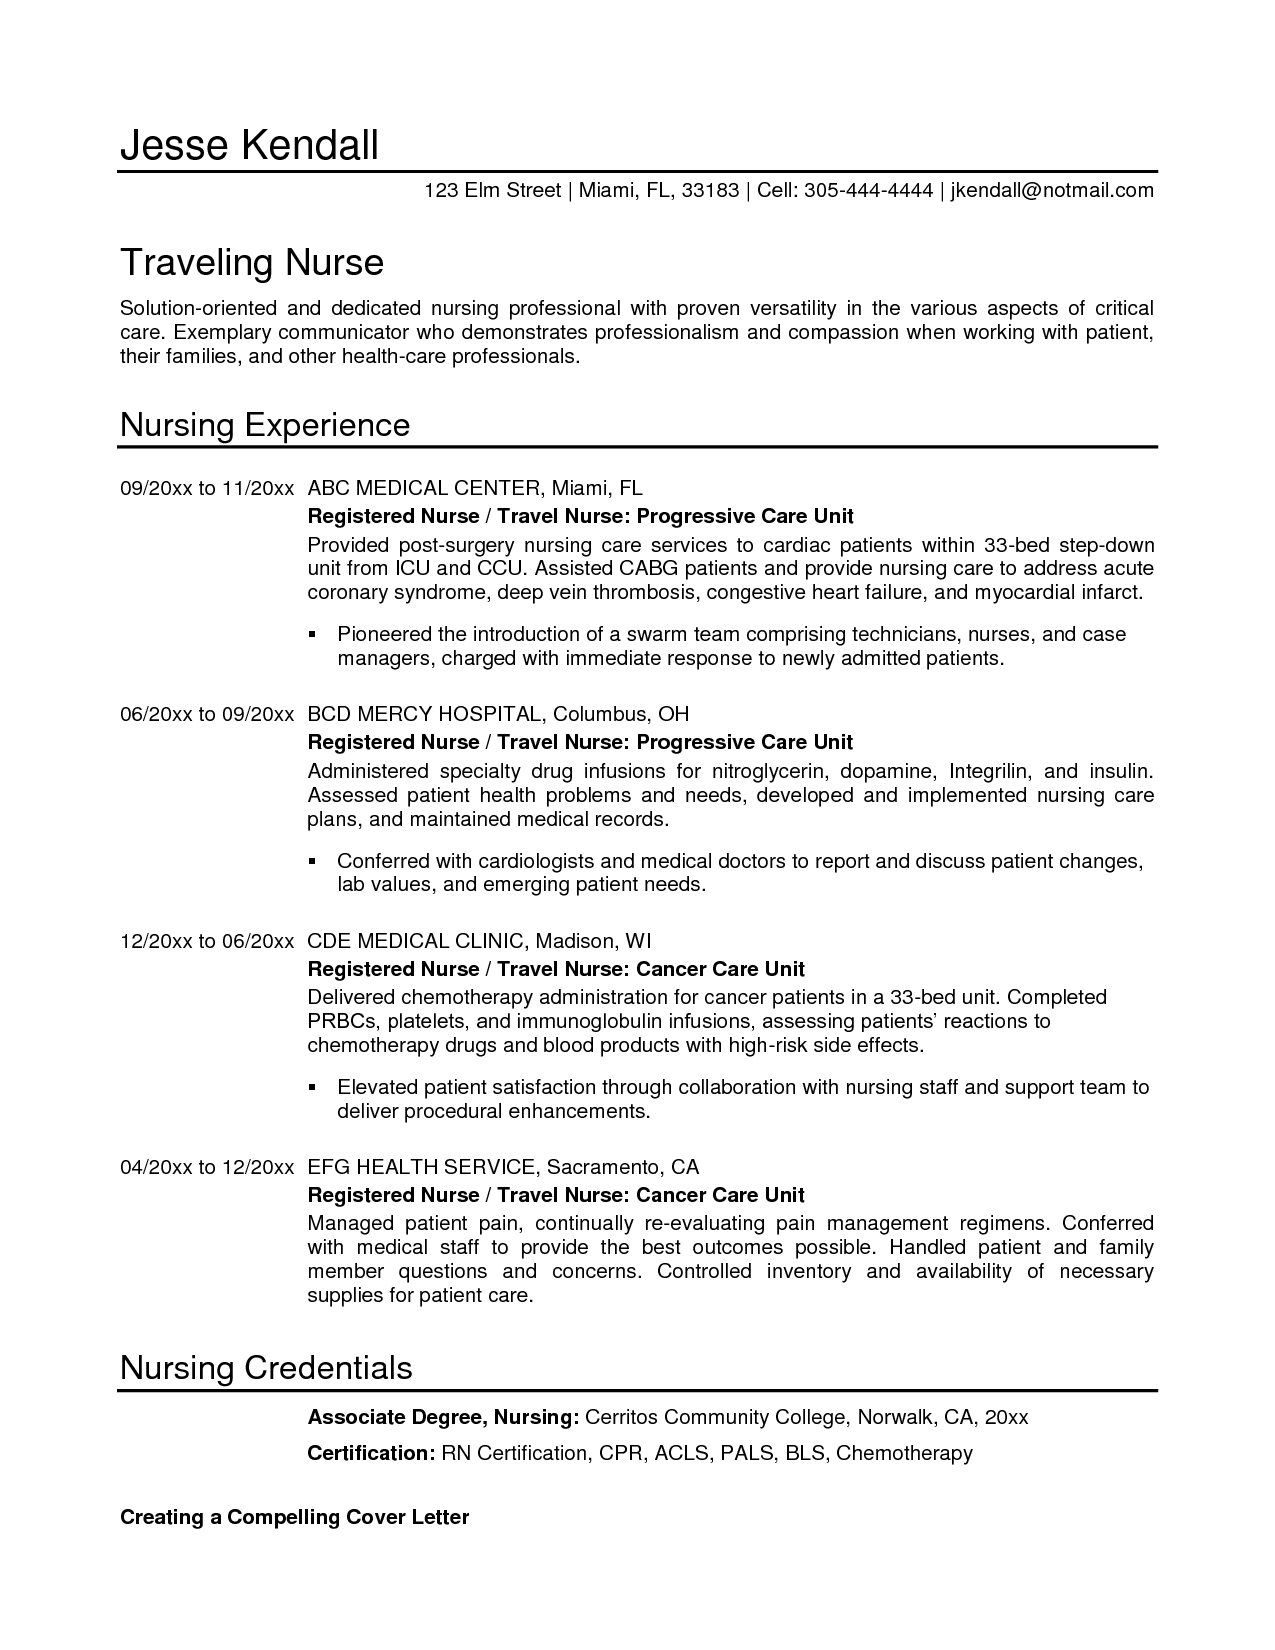 Resume Nursing Resume Format Download Example Throughout Icu Report Template Best Template Ide Nursing Resume Registered Nurse Resume Free Printable Resume